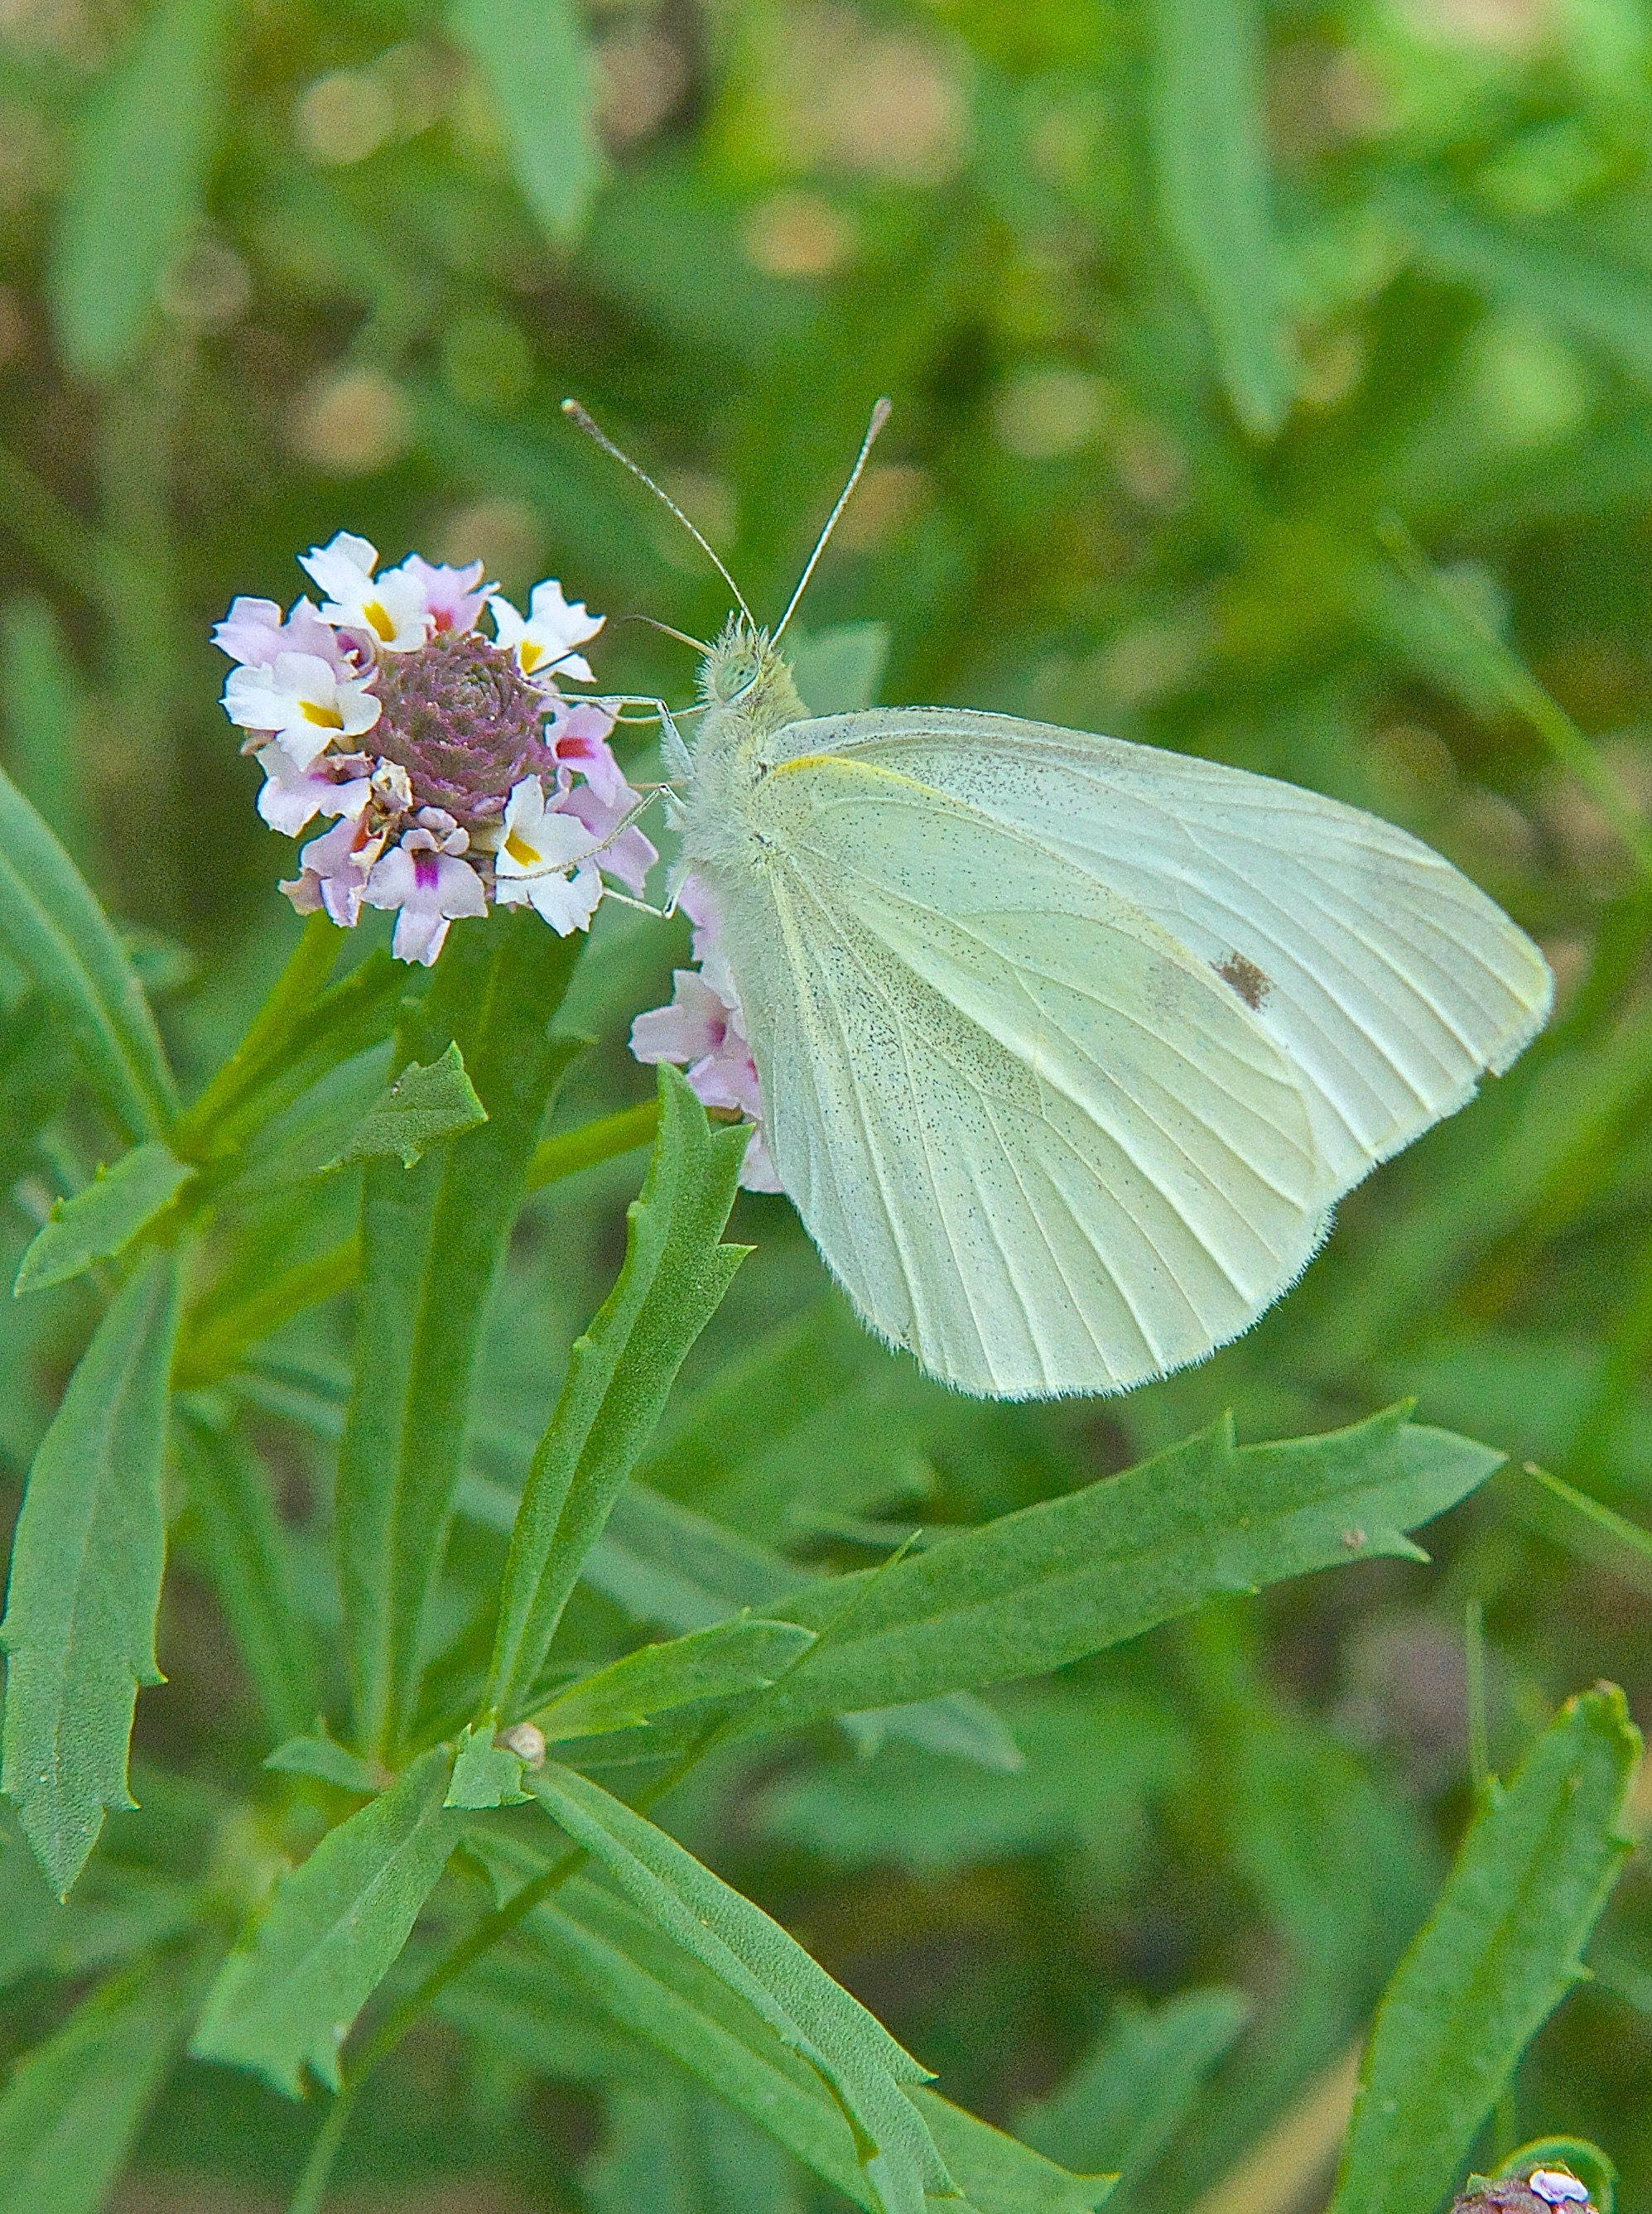 Queen Alexander's Sulphur Butterfly on Fogfruit